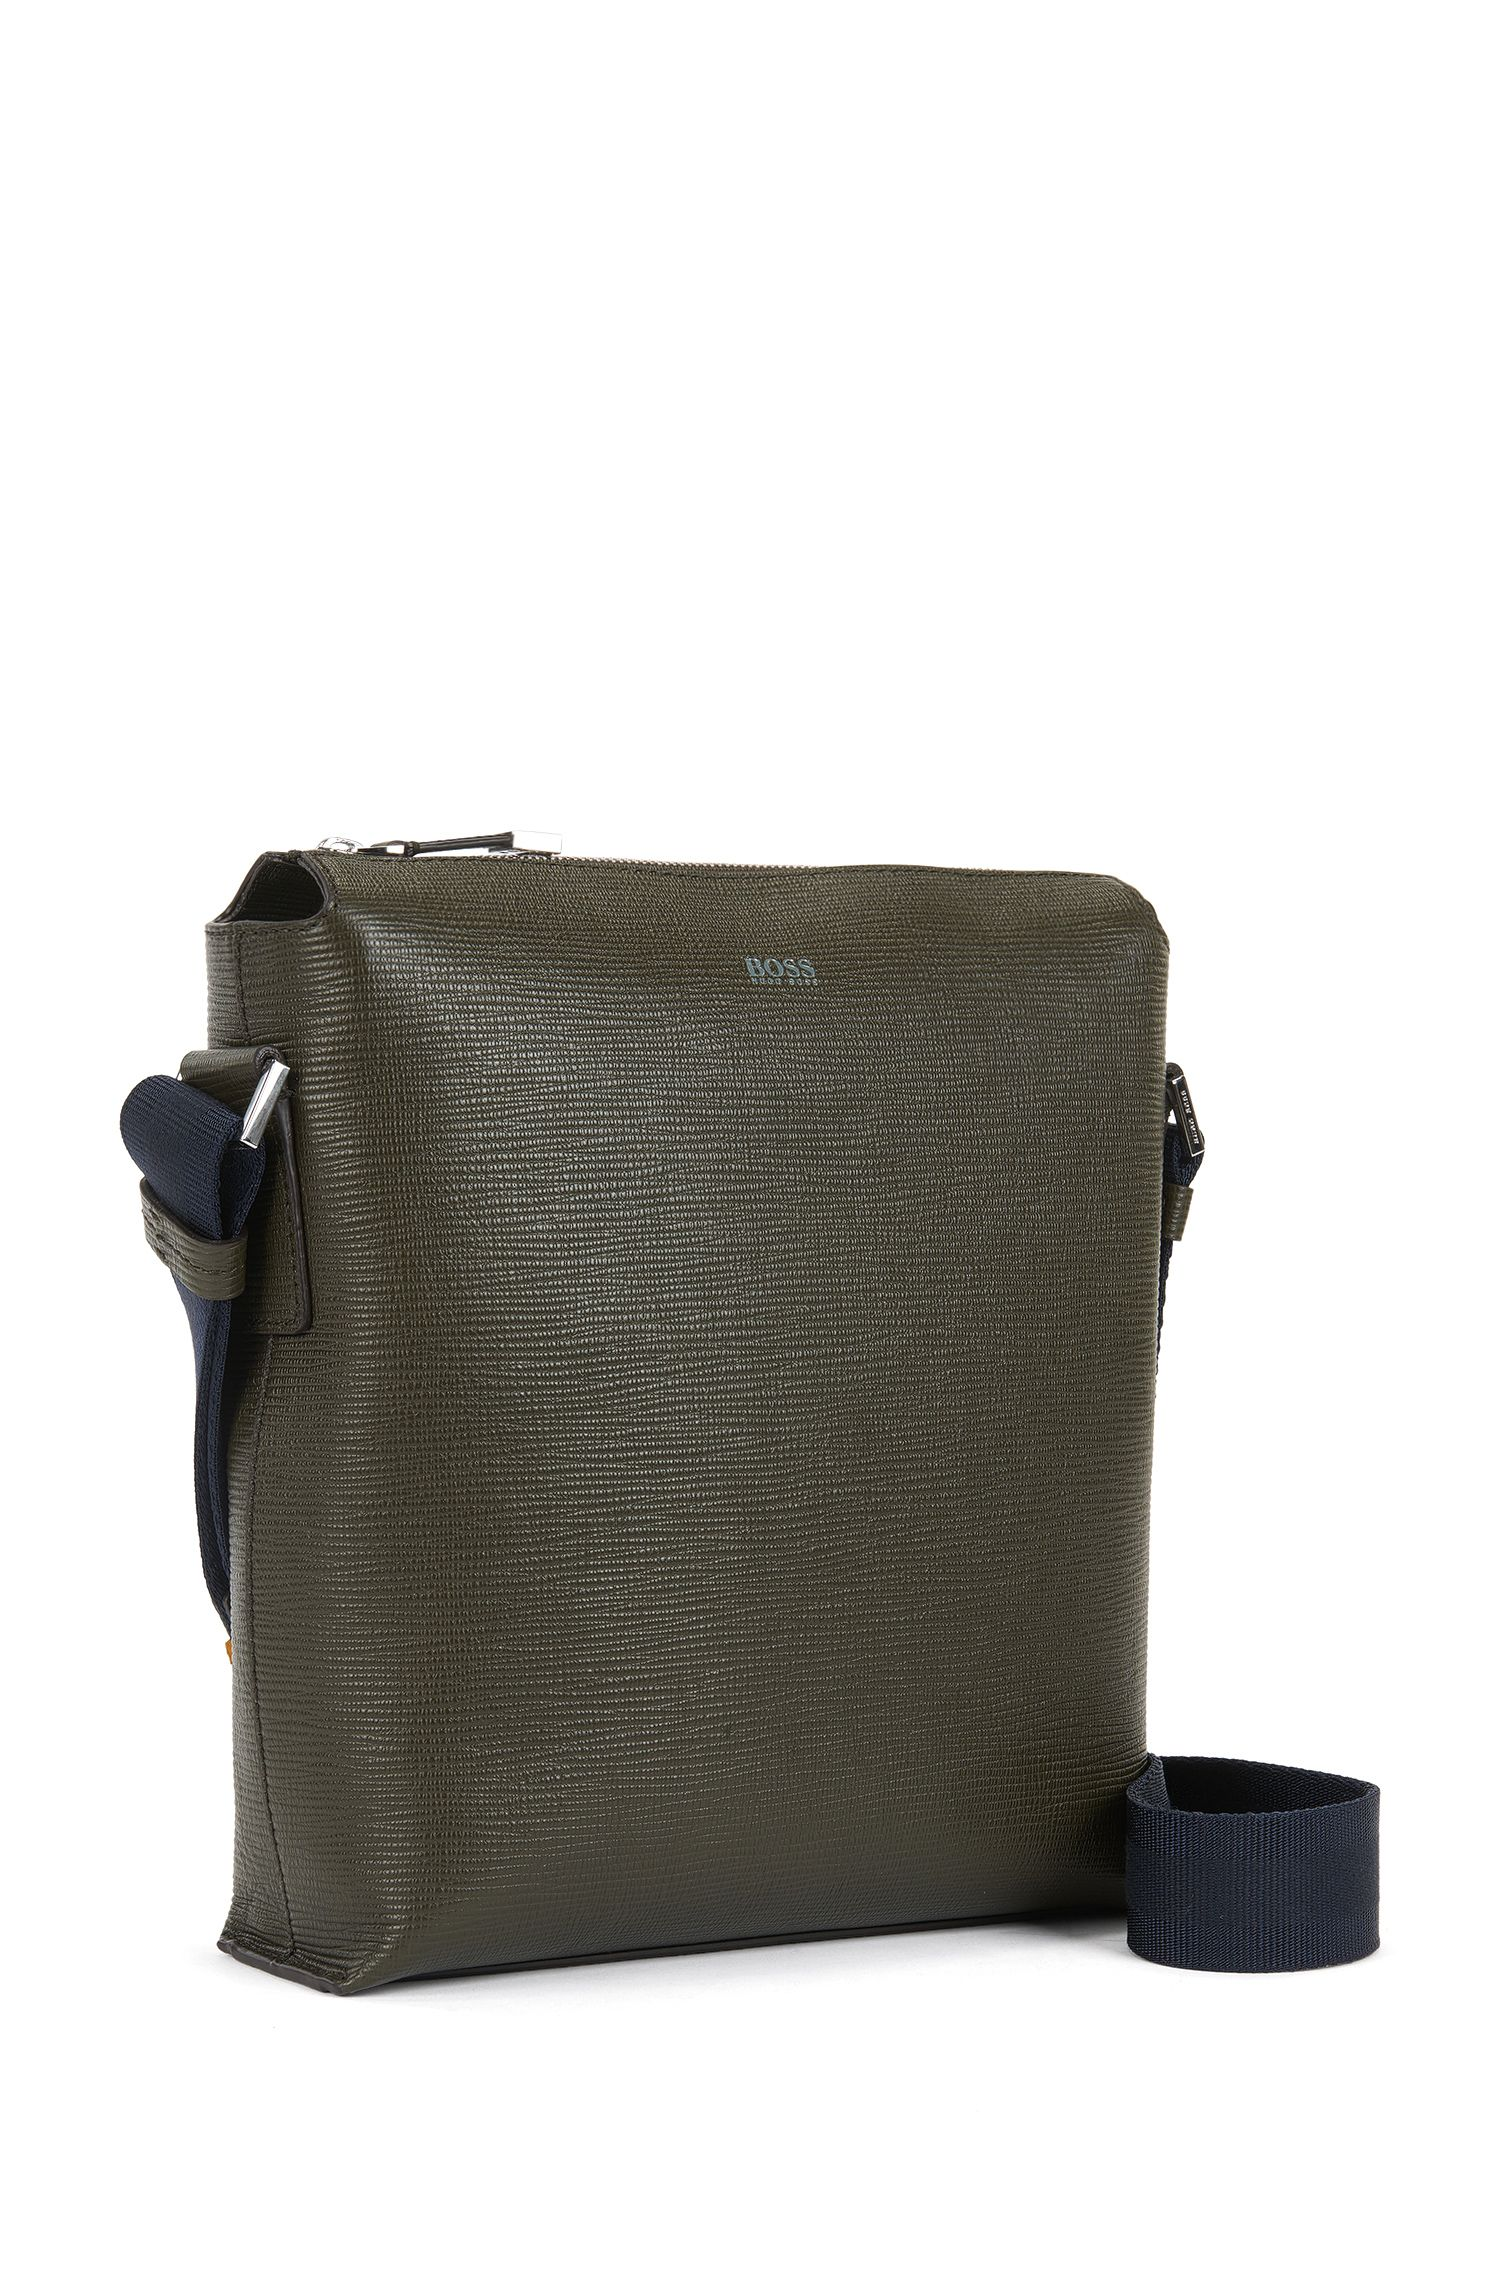 Reporter bag in straw-printed Italian leather